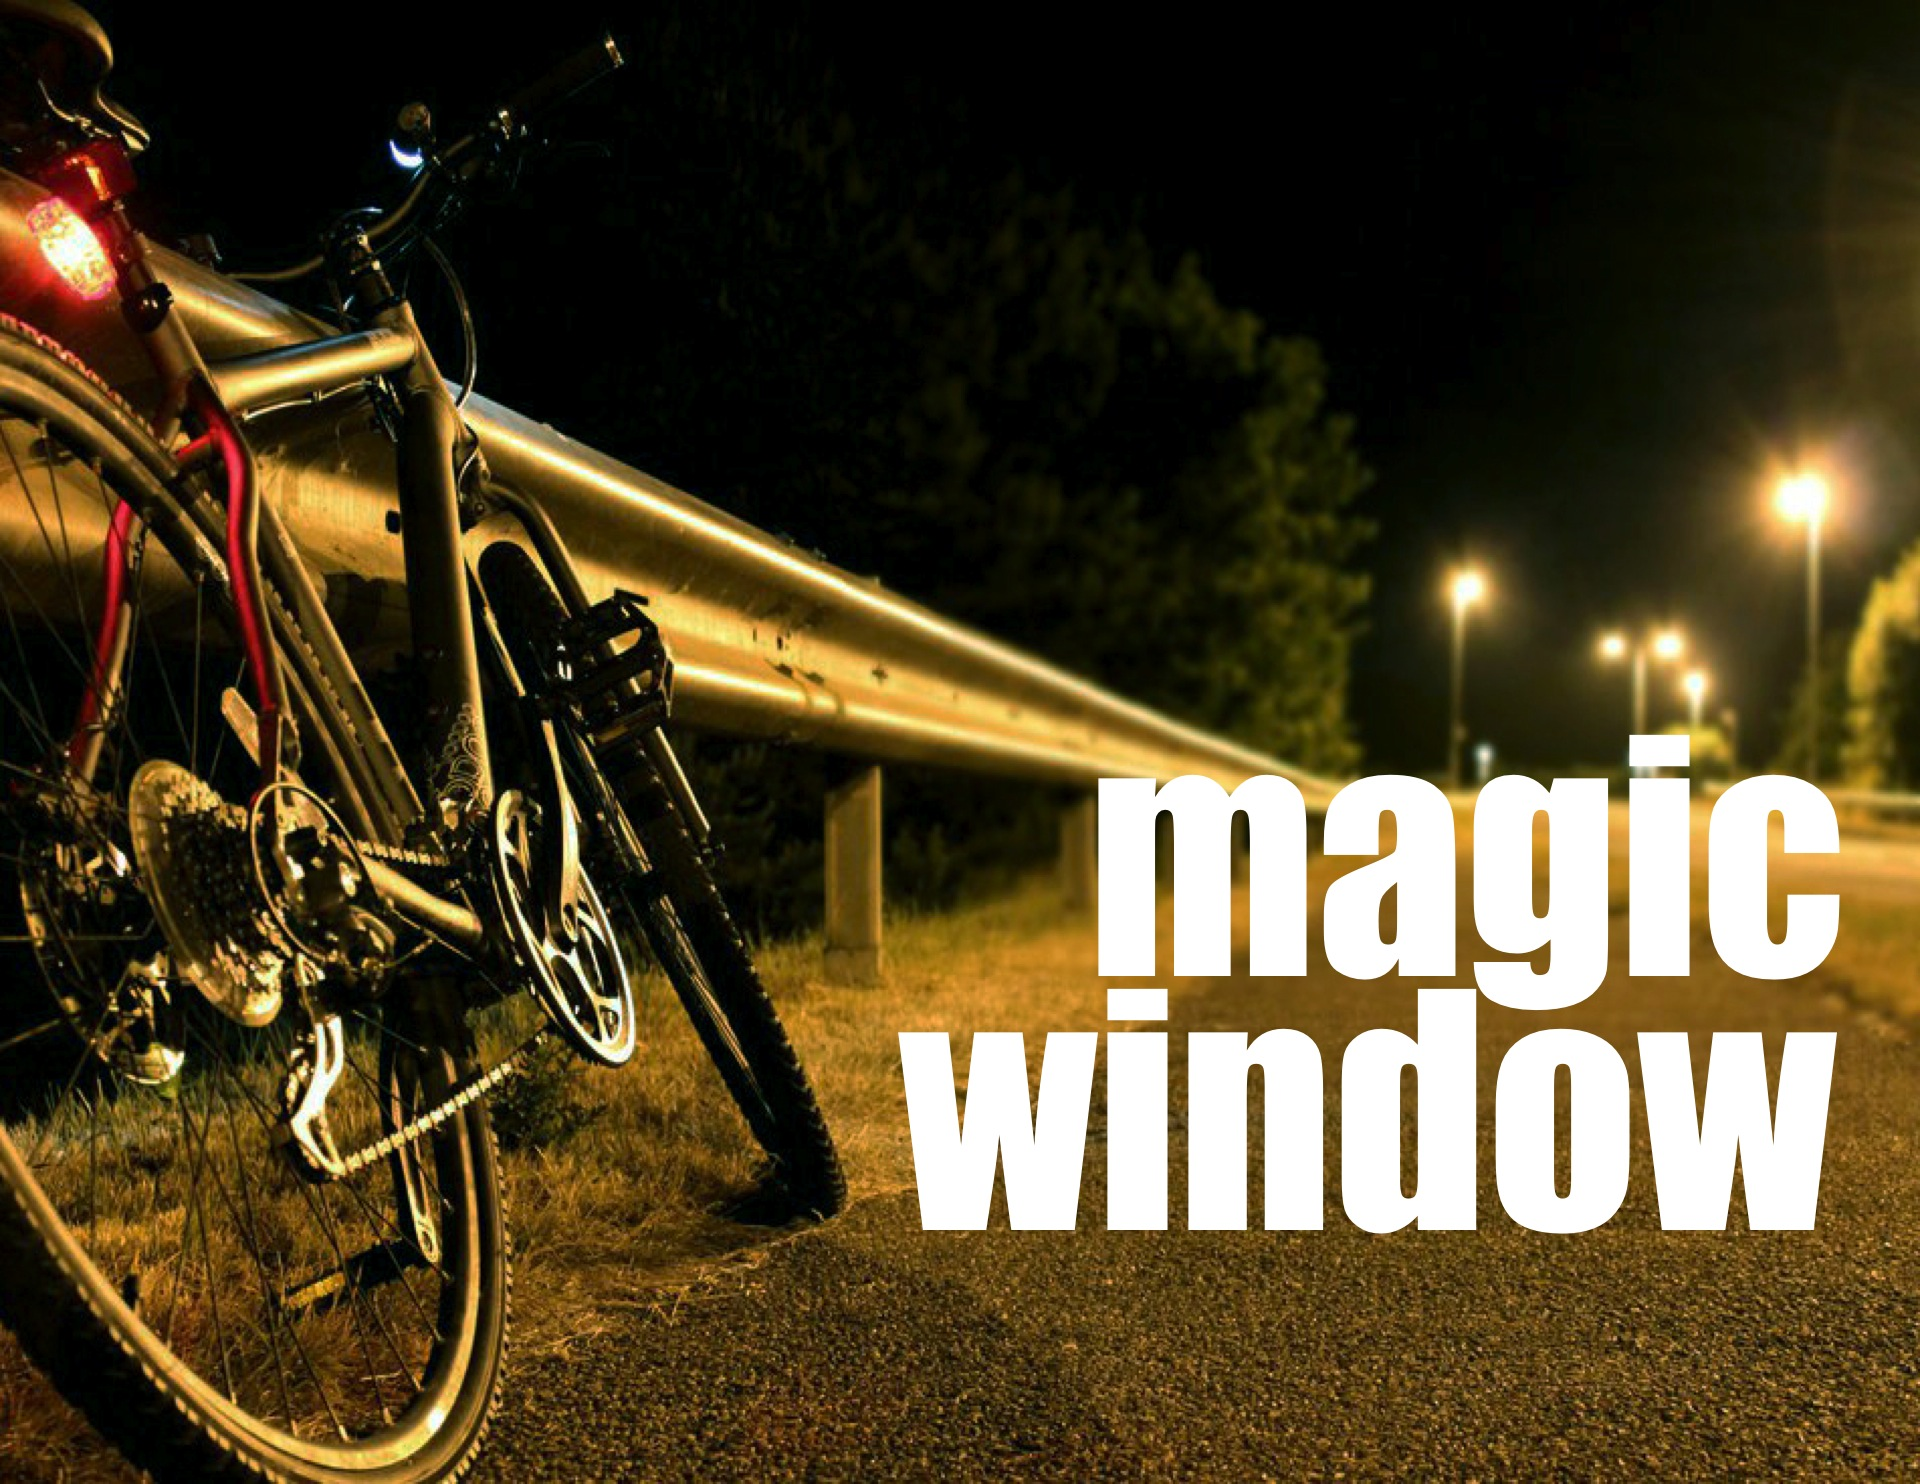 Magic_Window_cover_title-only.jpg